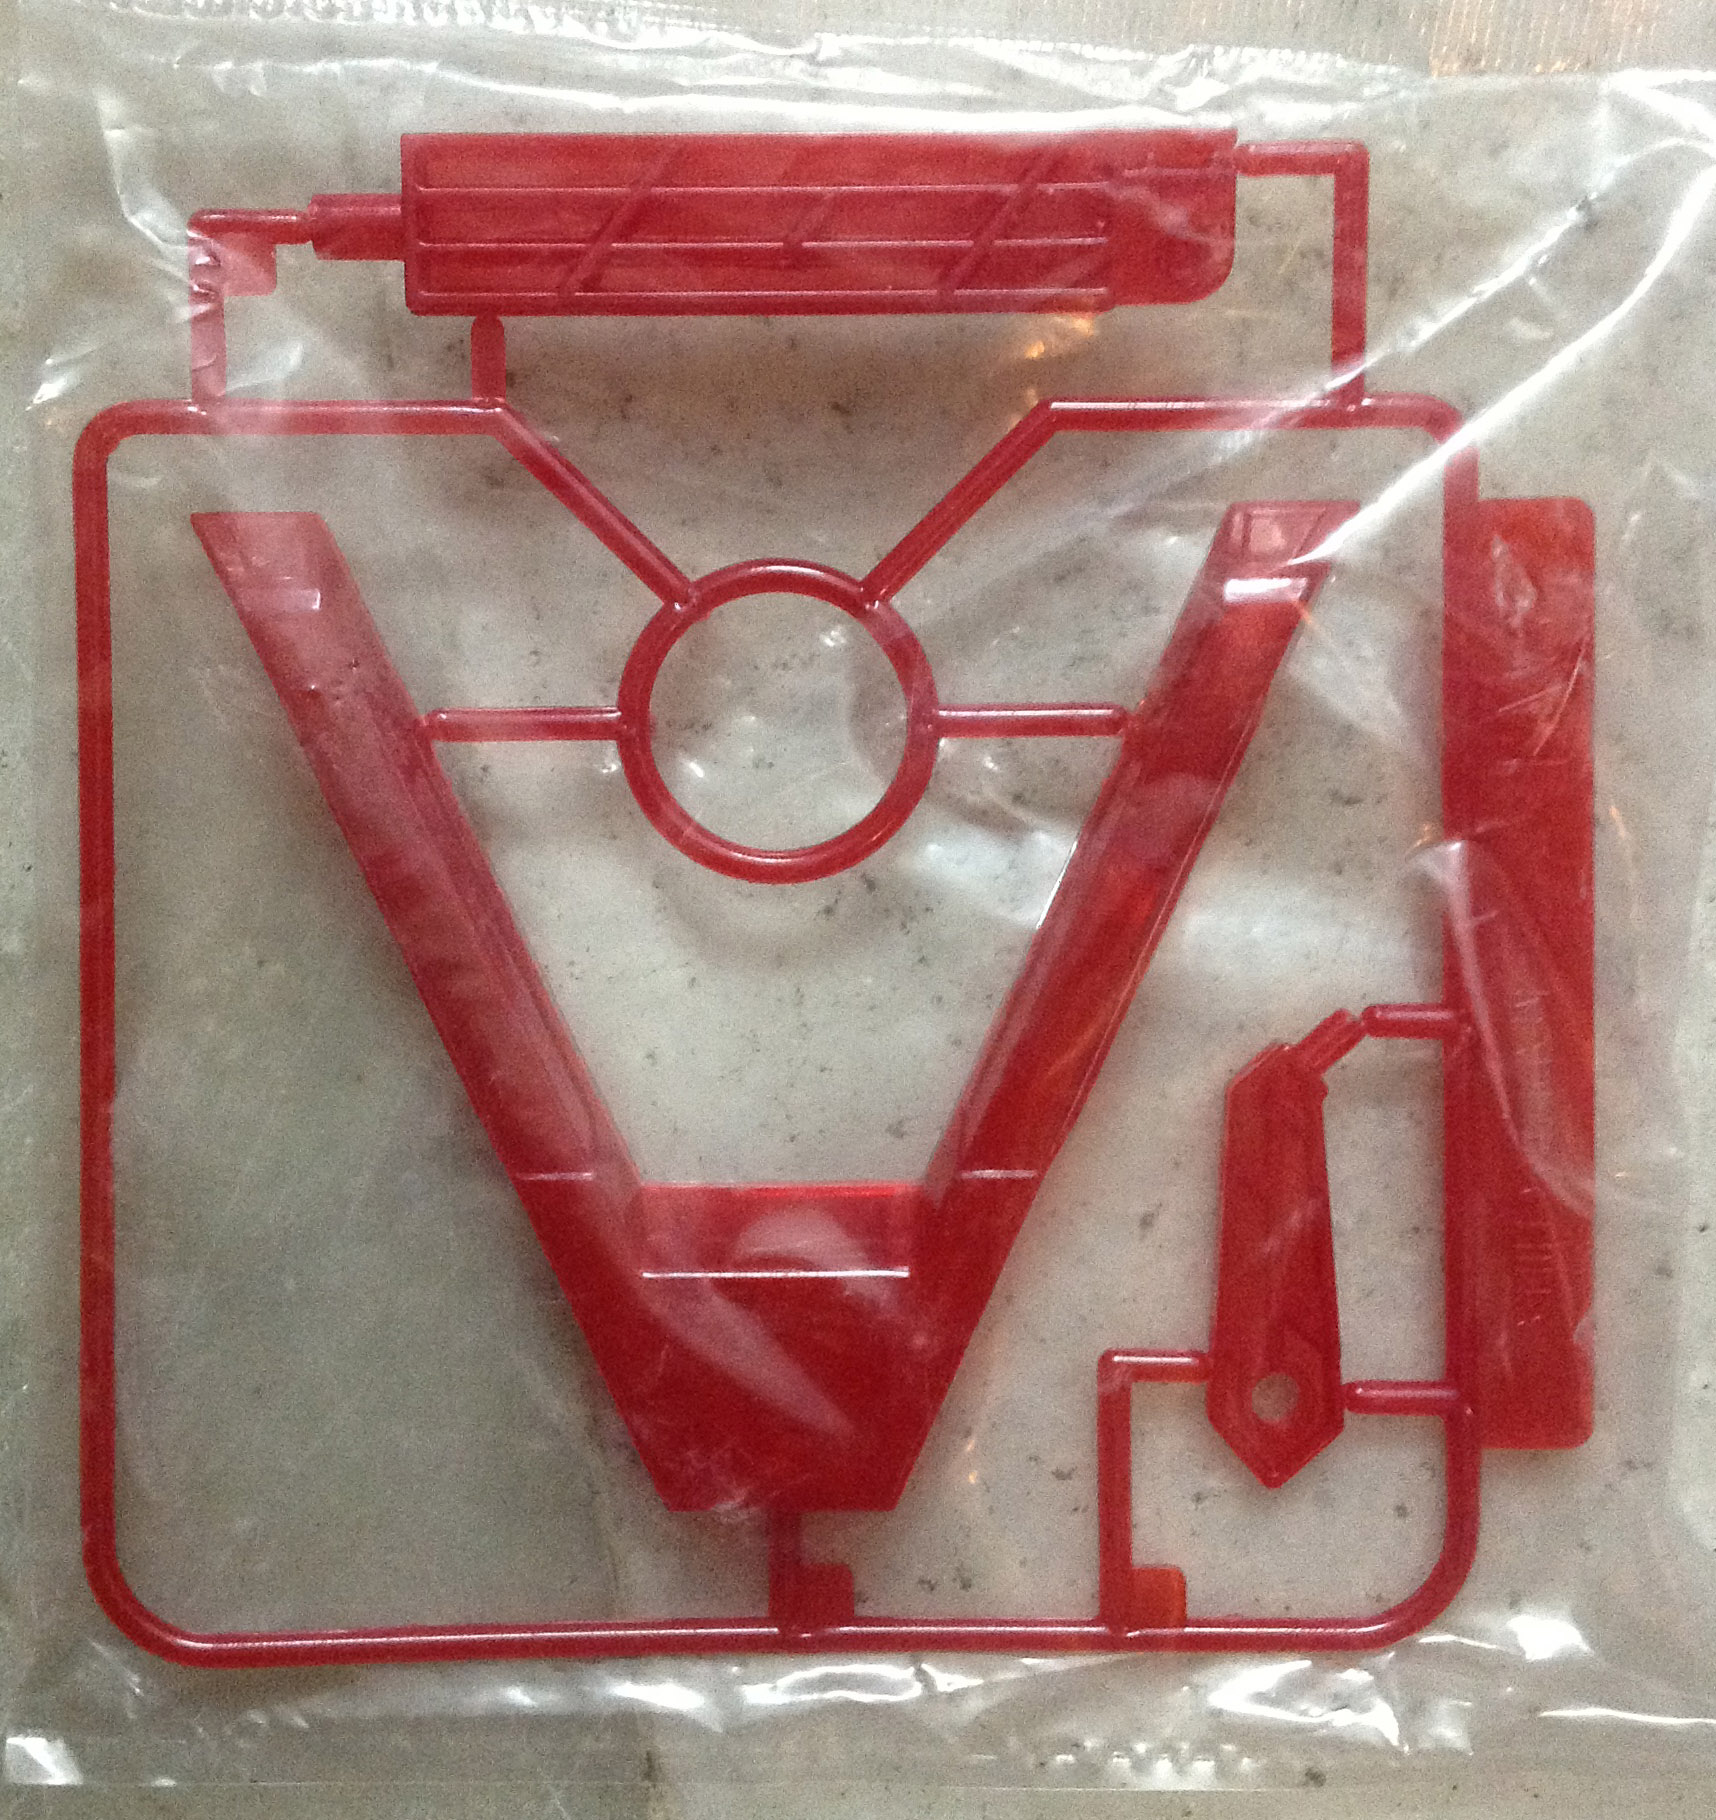 SD, 1/144 Action Base (Red)